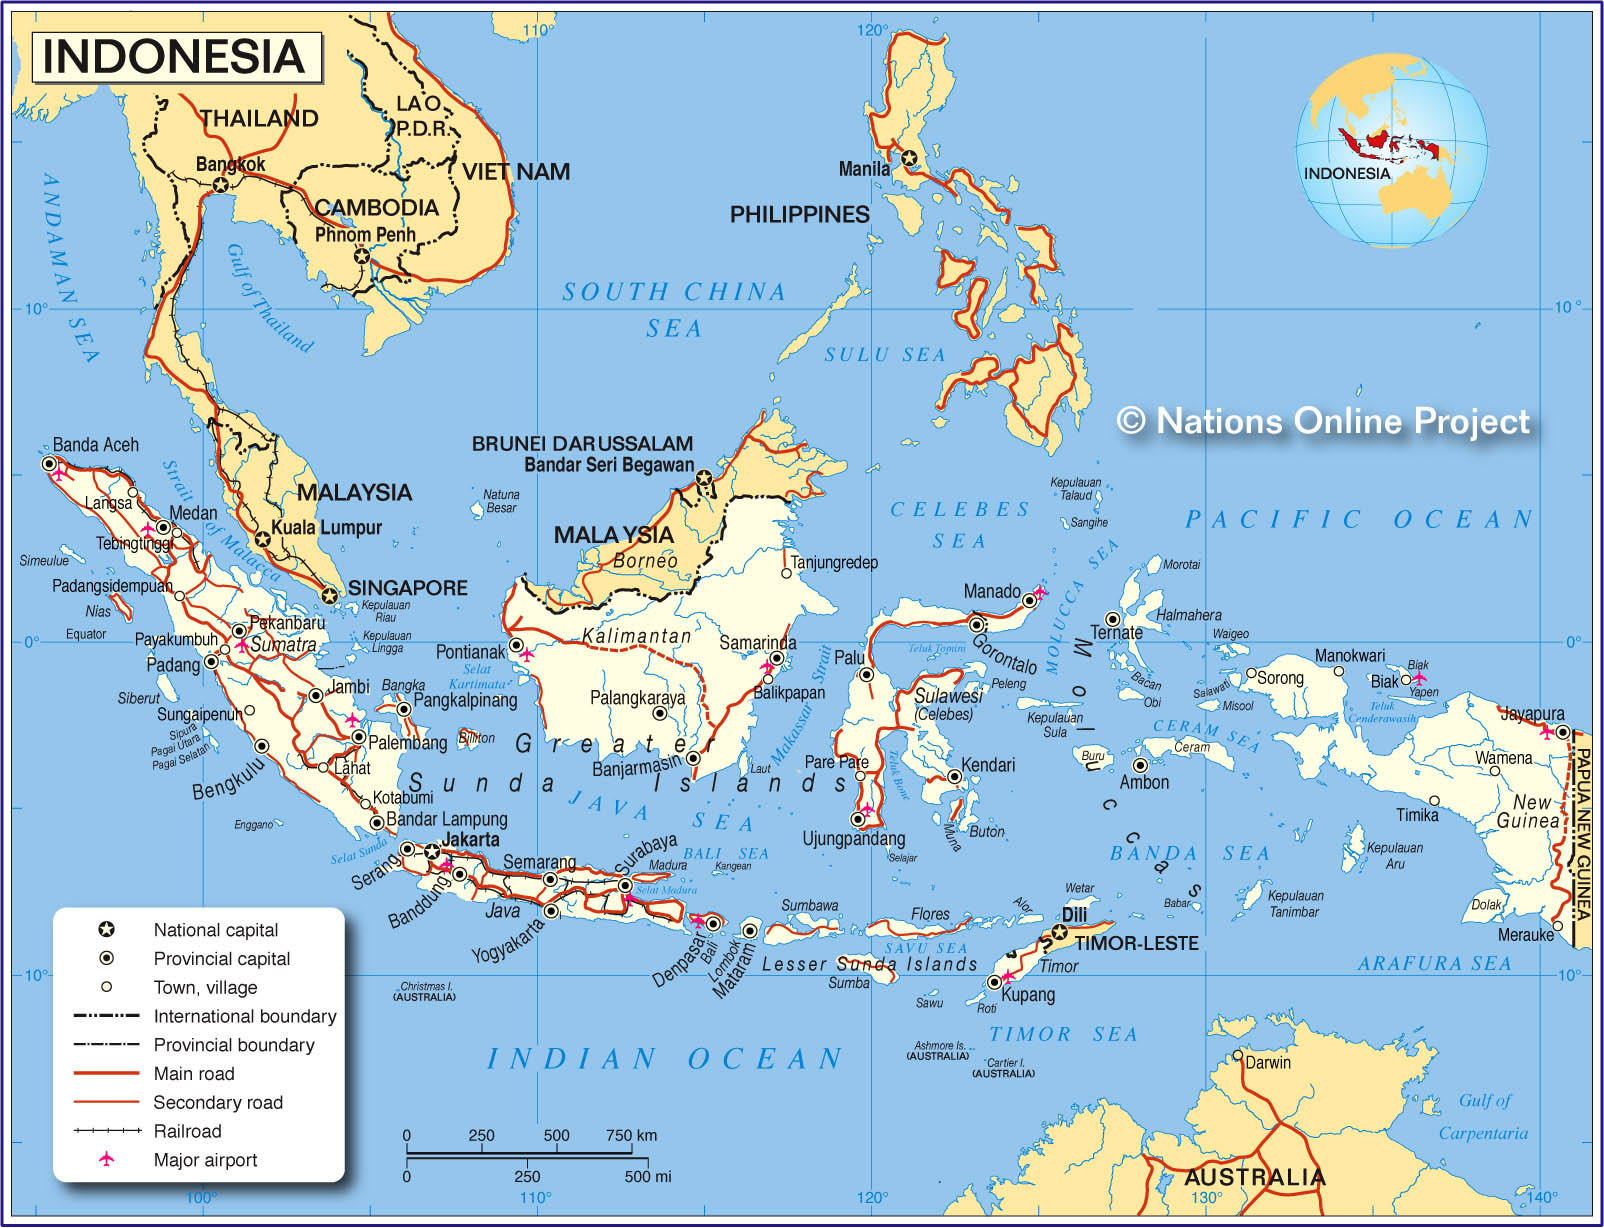 indonesia_map.jpg INDONESIA MAPA